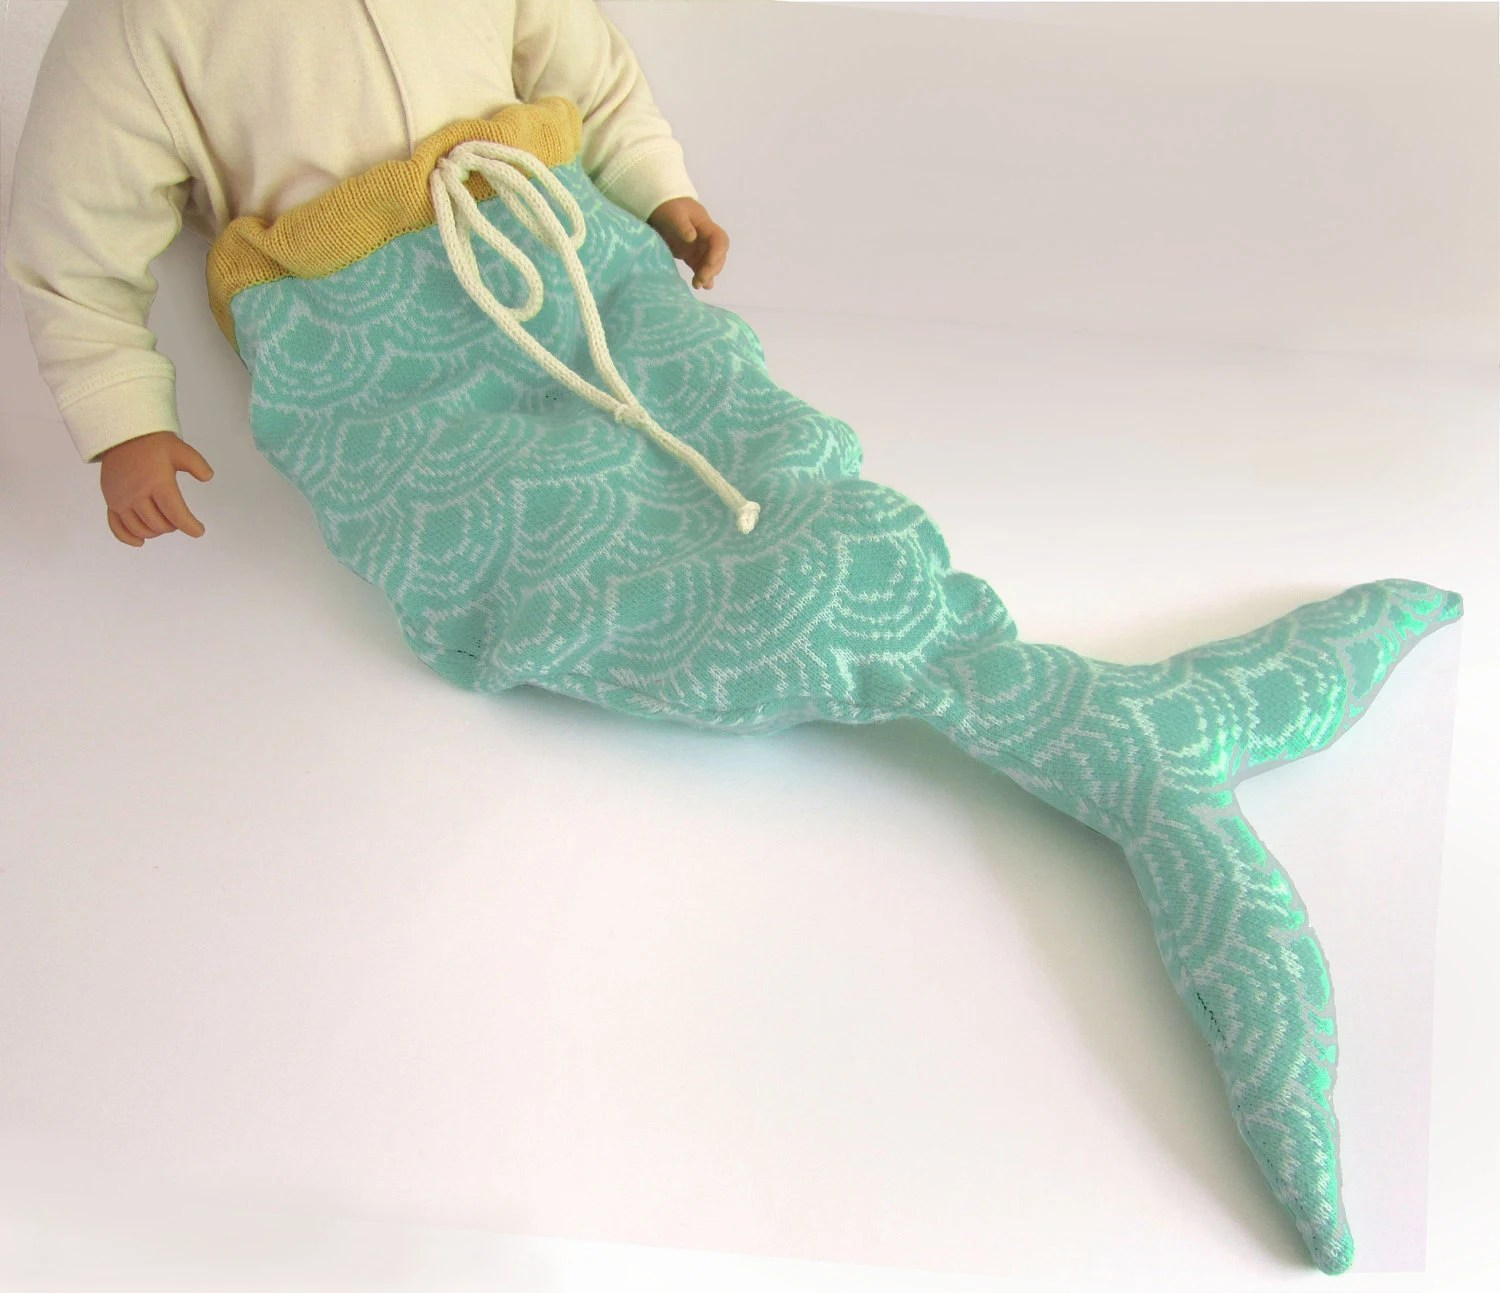 Handmade Knitted Mermaid Tail Baby Costume - The Miniature Knit Shop